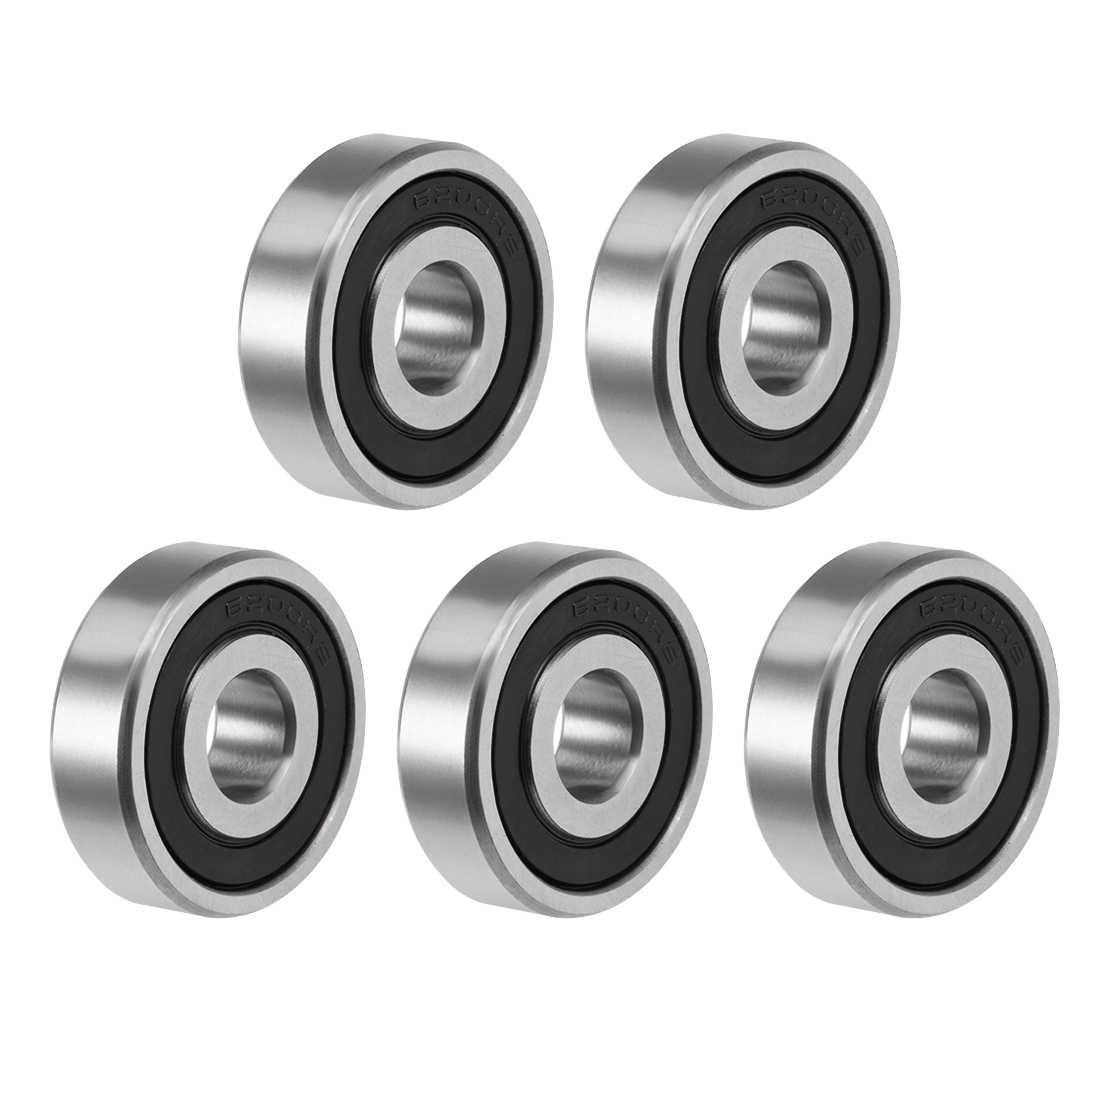 6200-2RS Ball Bearing 10x30x9mm Double Sealed ABEC-3 Bearings 5pcs